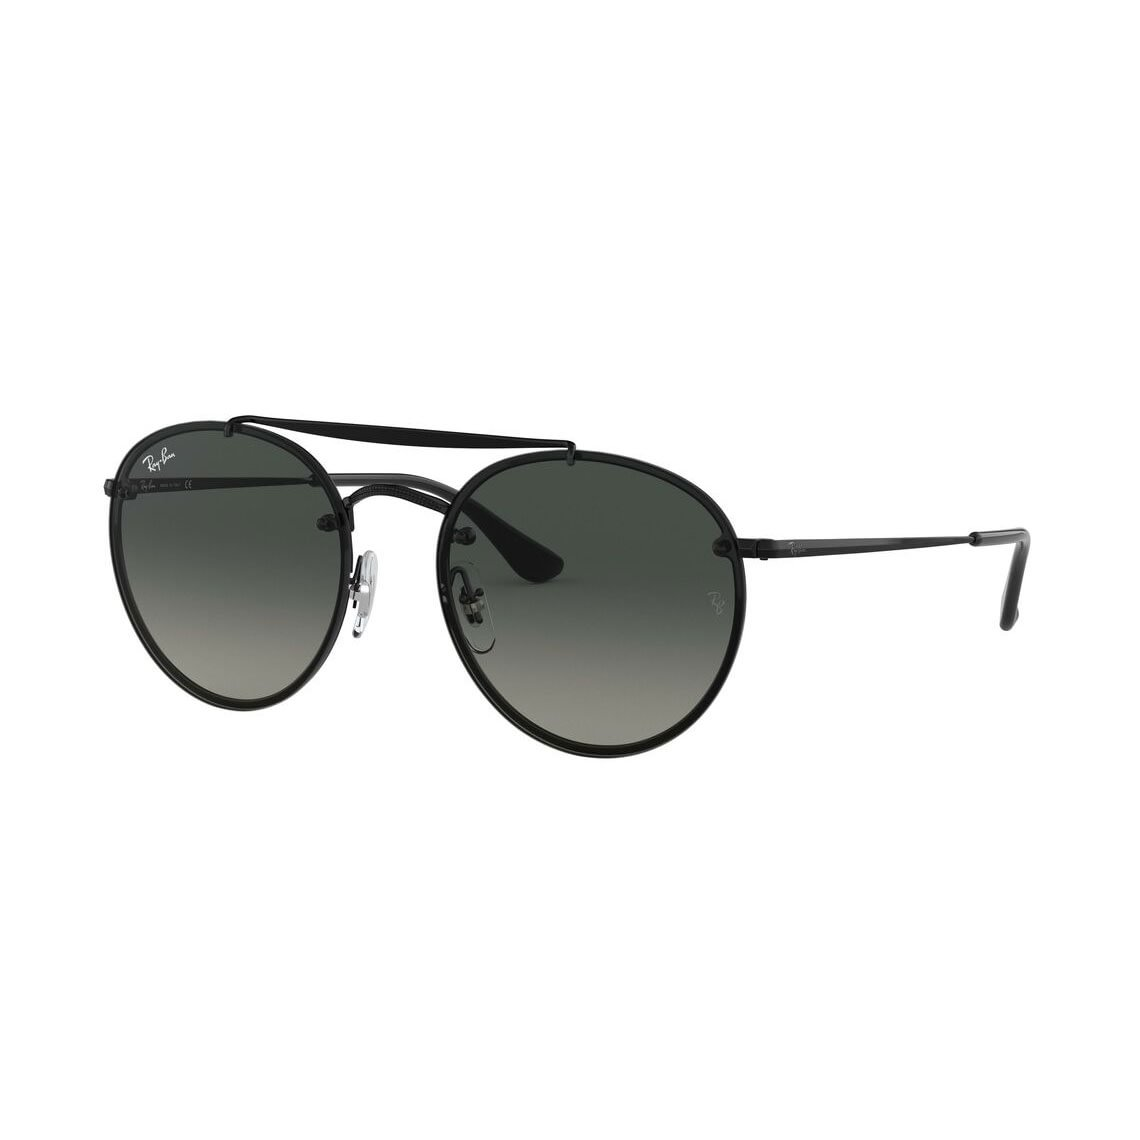 Ray-Ban Blaze Round Double Bridge RB3614N 148/11 5418